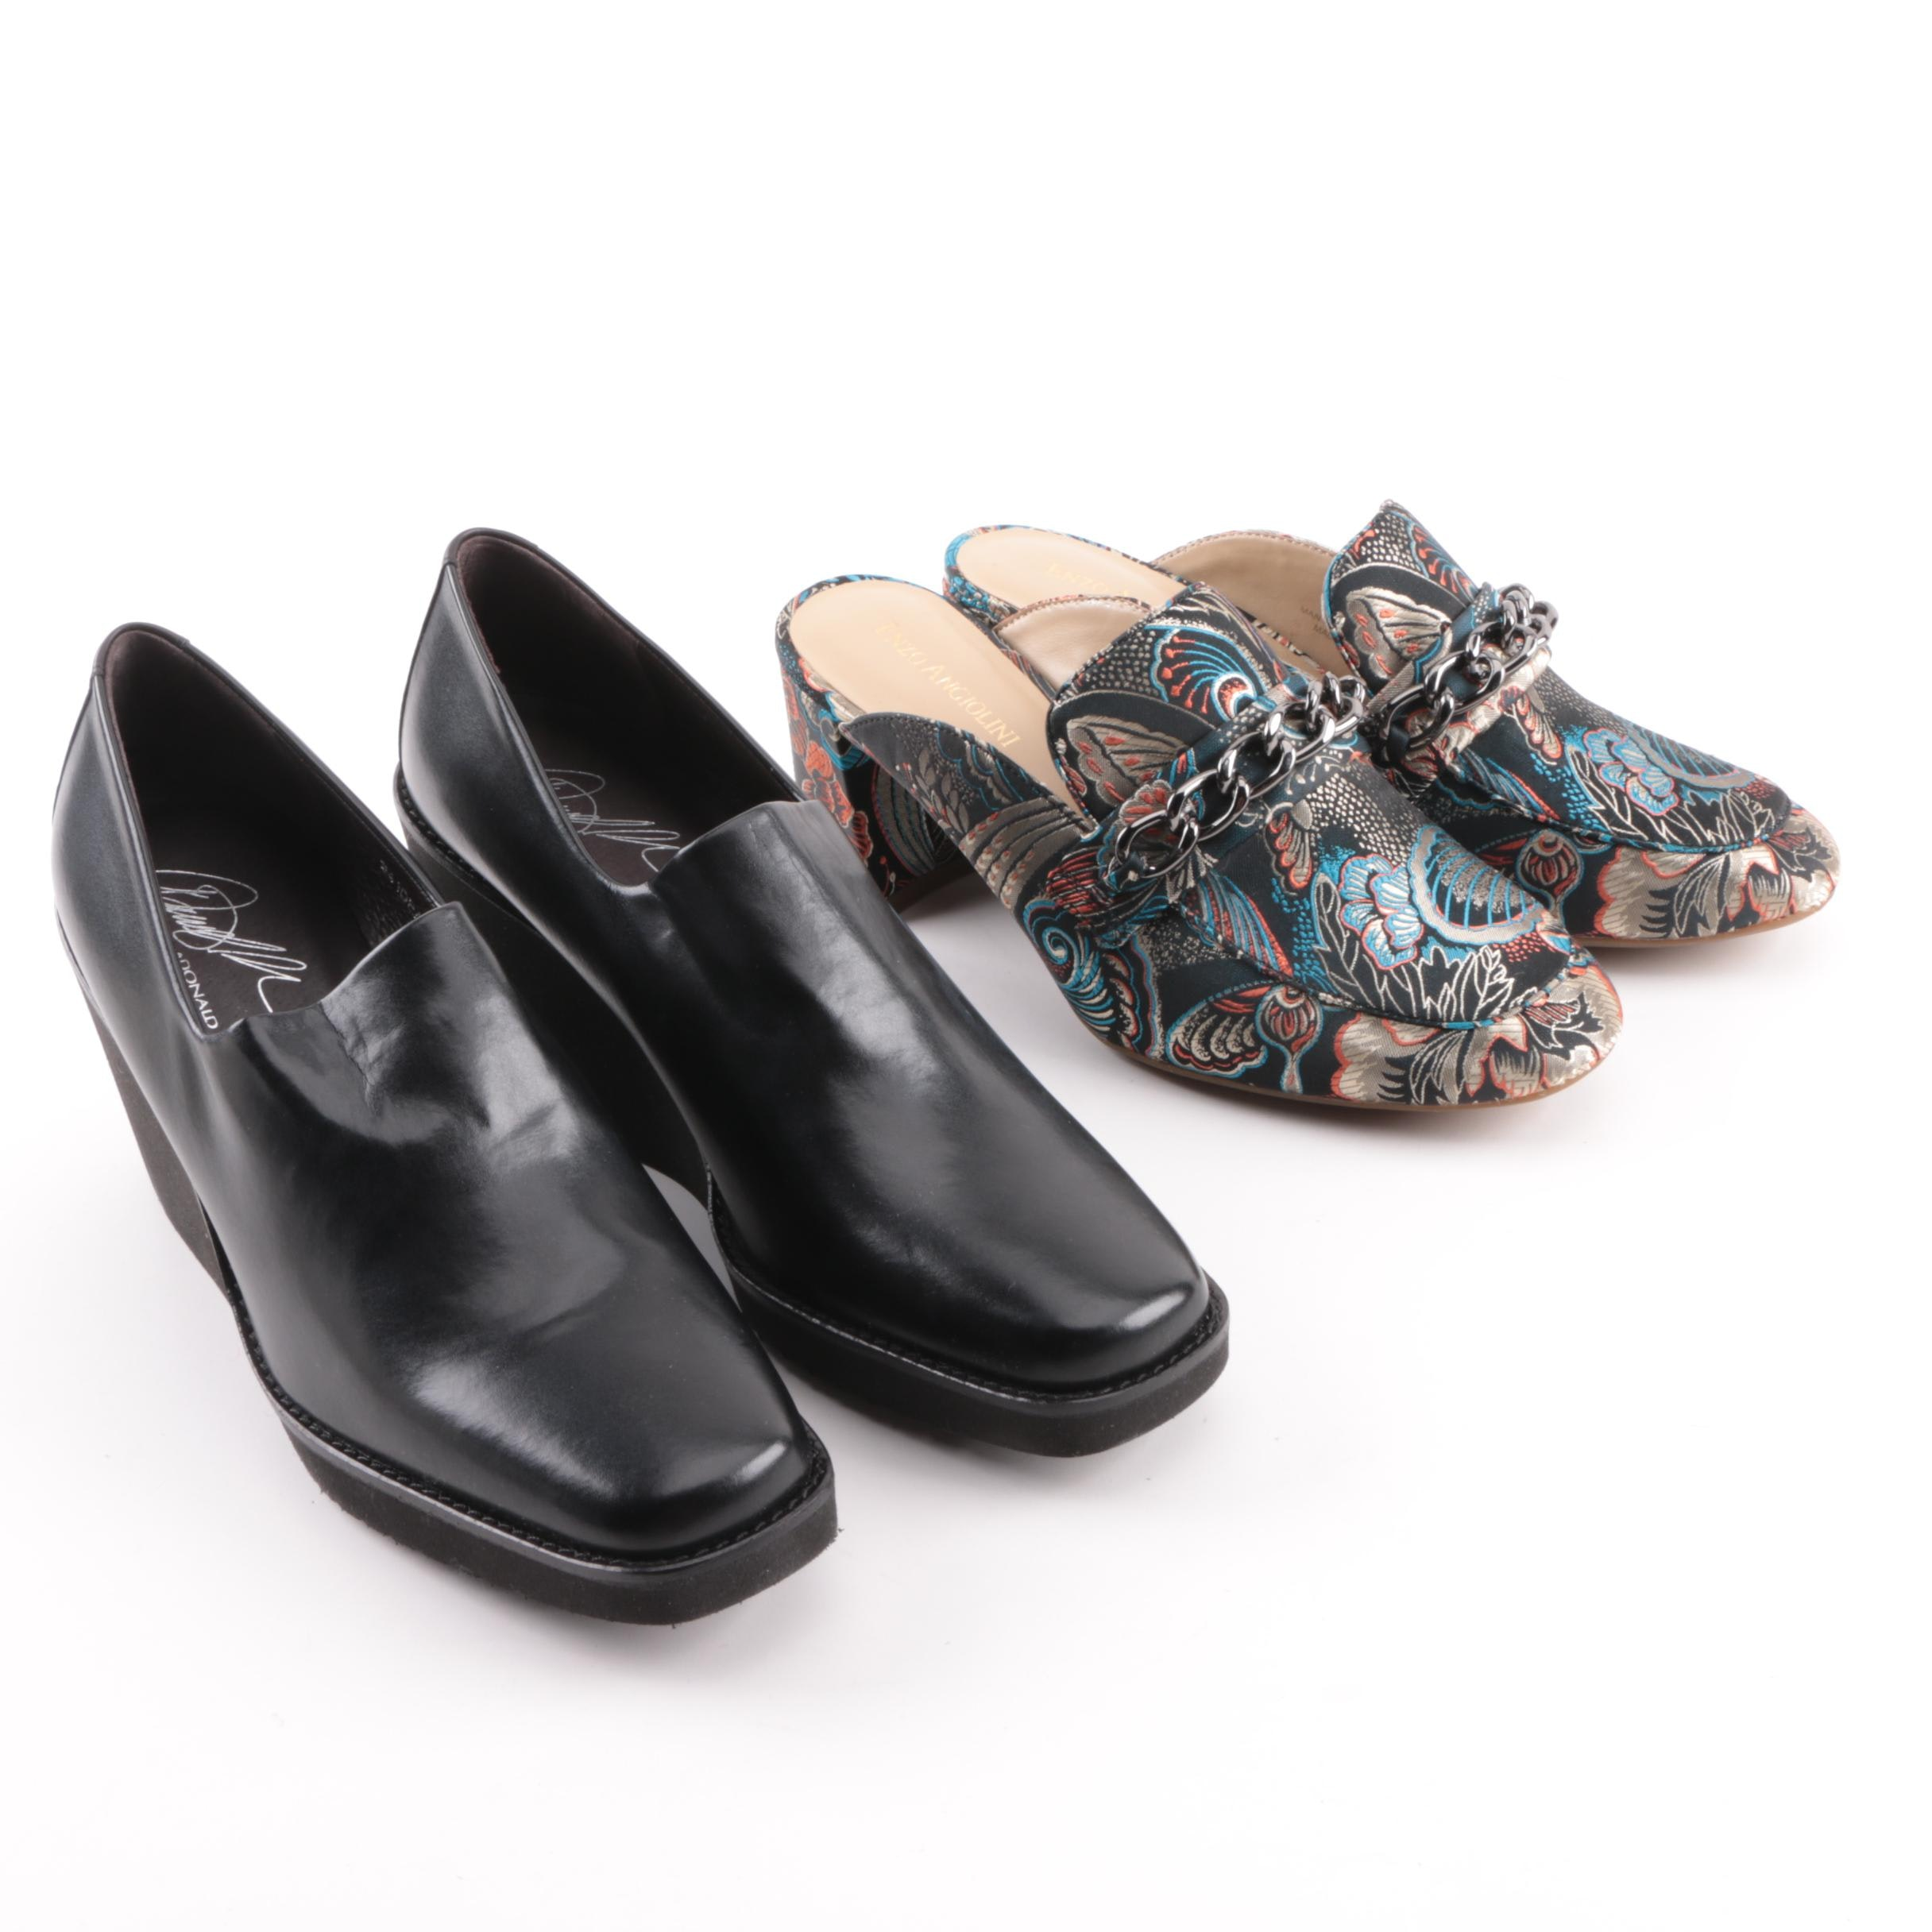 Donald J Pliner Black Leather Wedges and Enzo Angiolini Brocade Mules